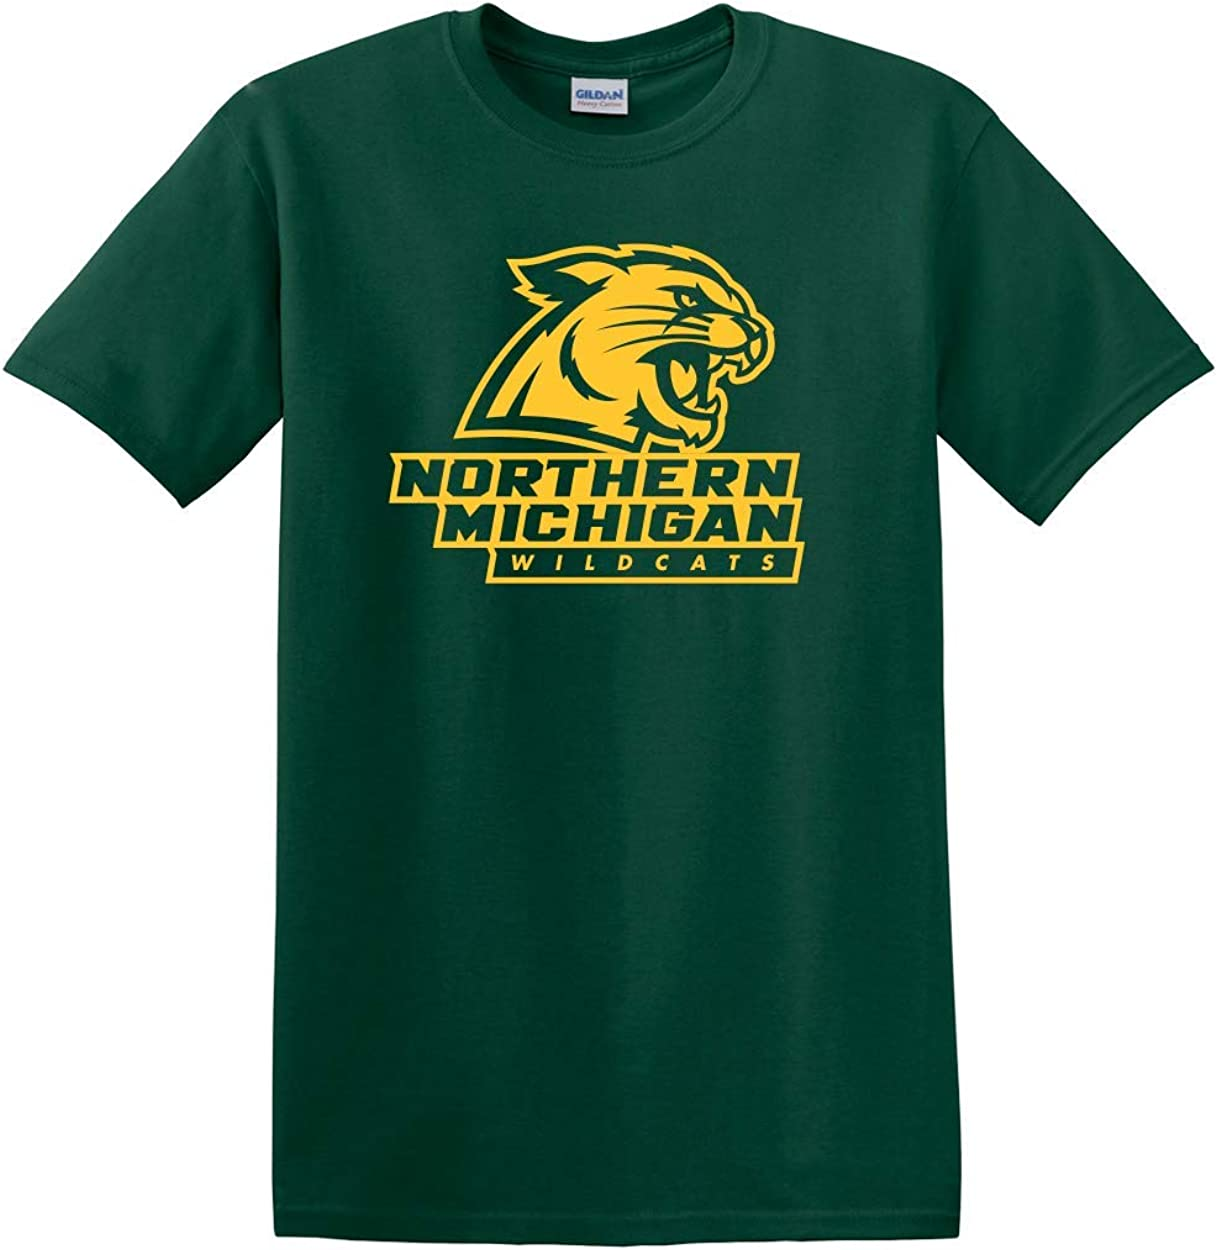 NCAA Northern Michigan Wildcats T-Shirt V1